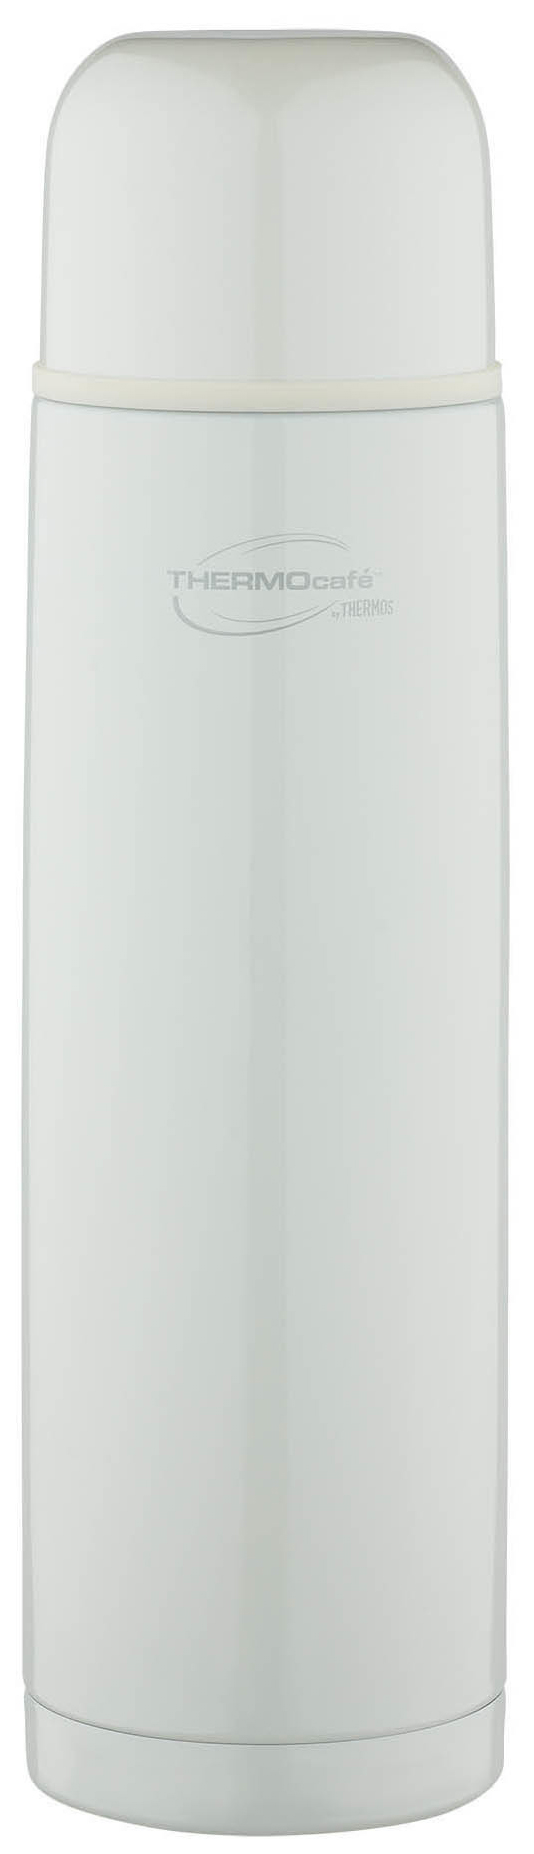 Фото - Термос Thermos ThermoCafe 1 л белый ThermoCafe